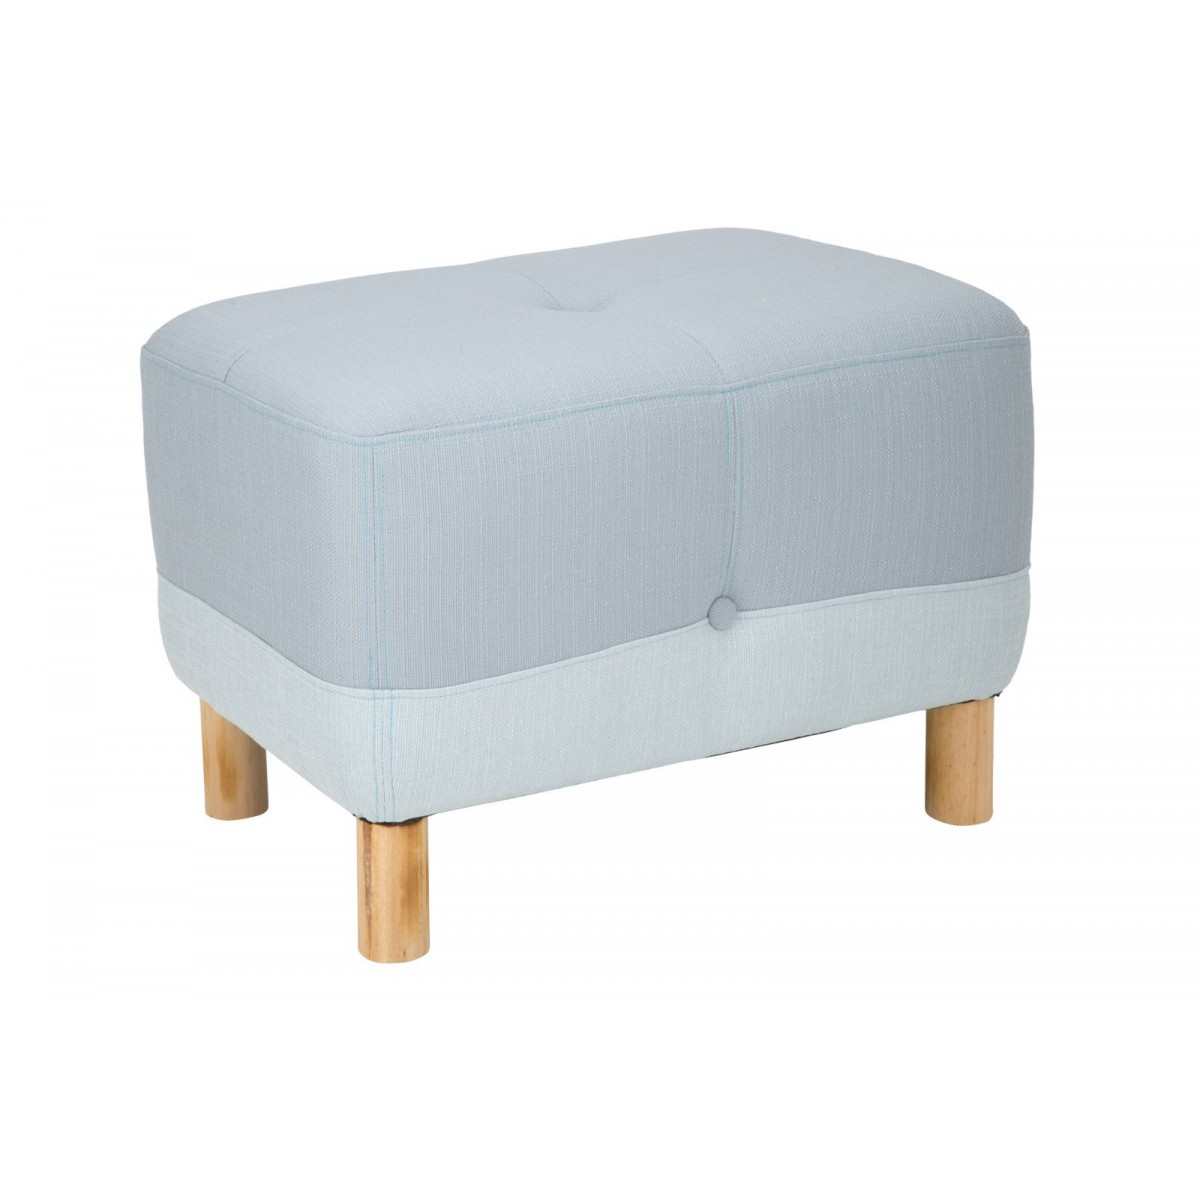 pouf design moderno per camera o salotto in tessuto bicolore azzurro e celeste gambe in legno di. Black Bedroom Furniture Sets. Home Design Ideas